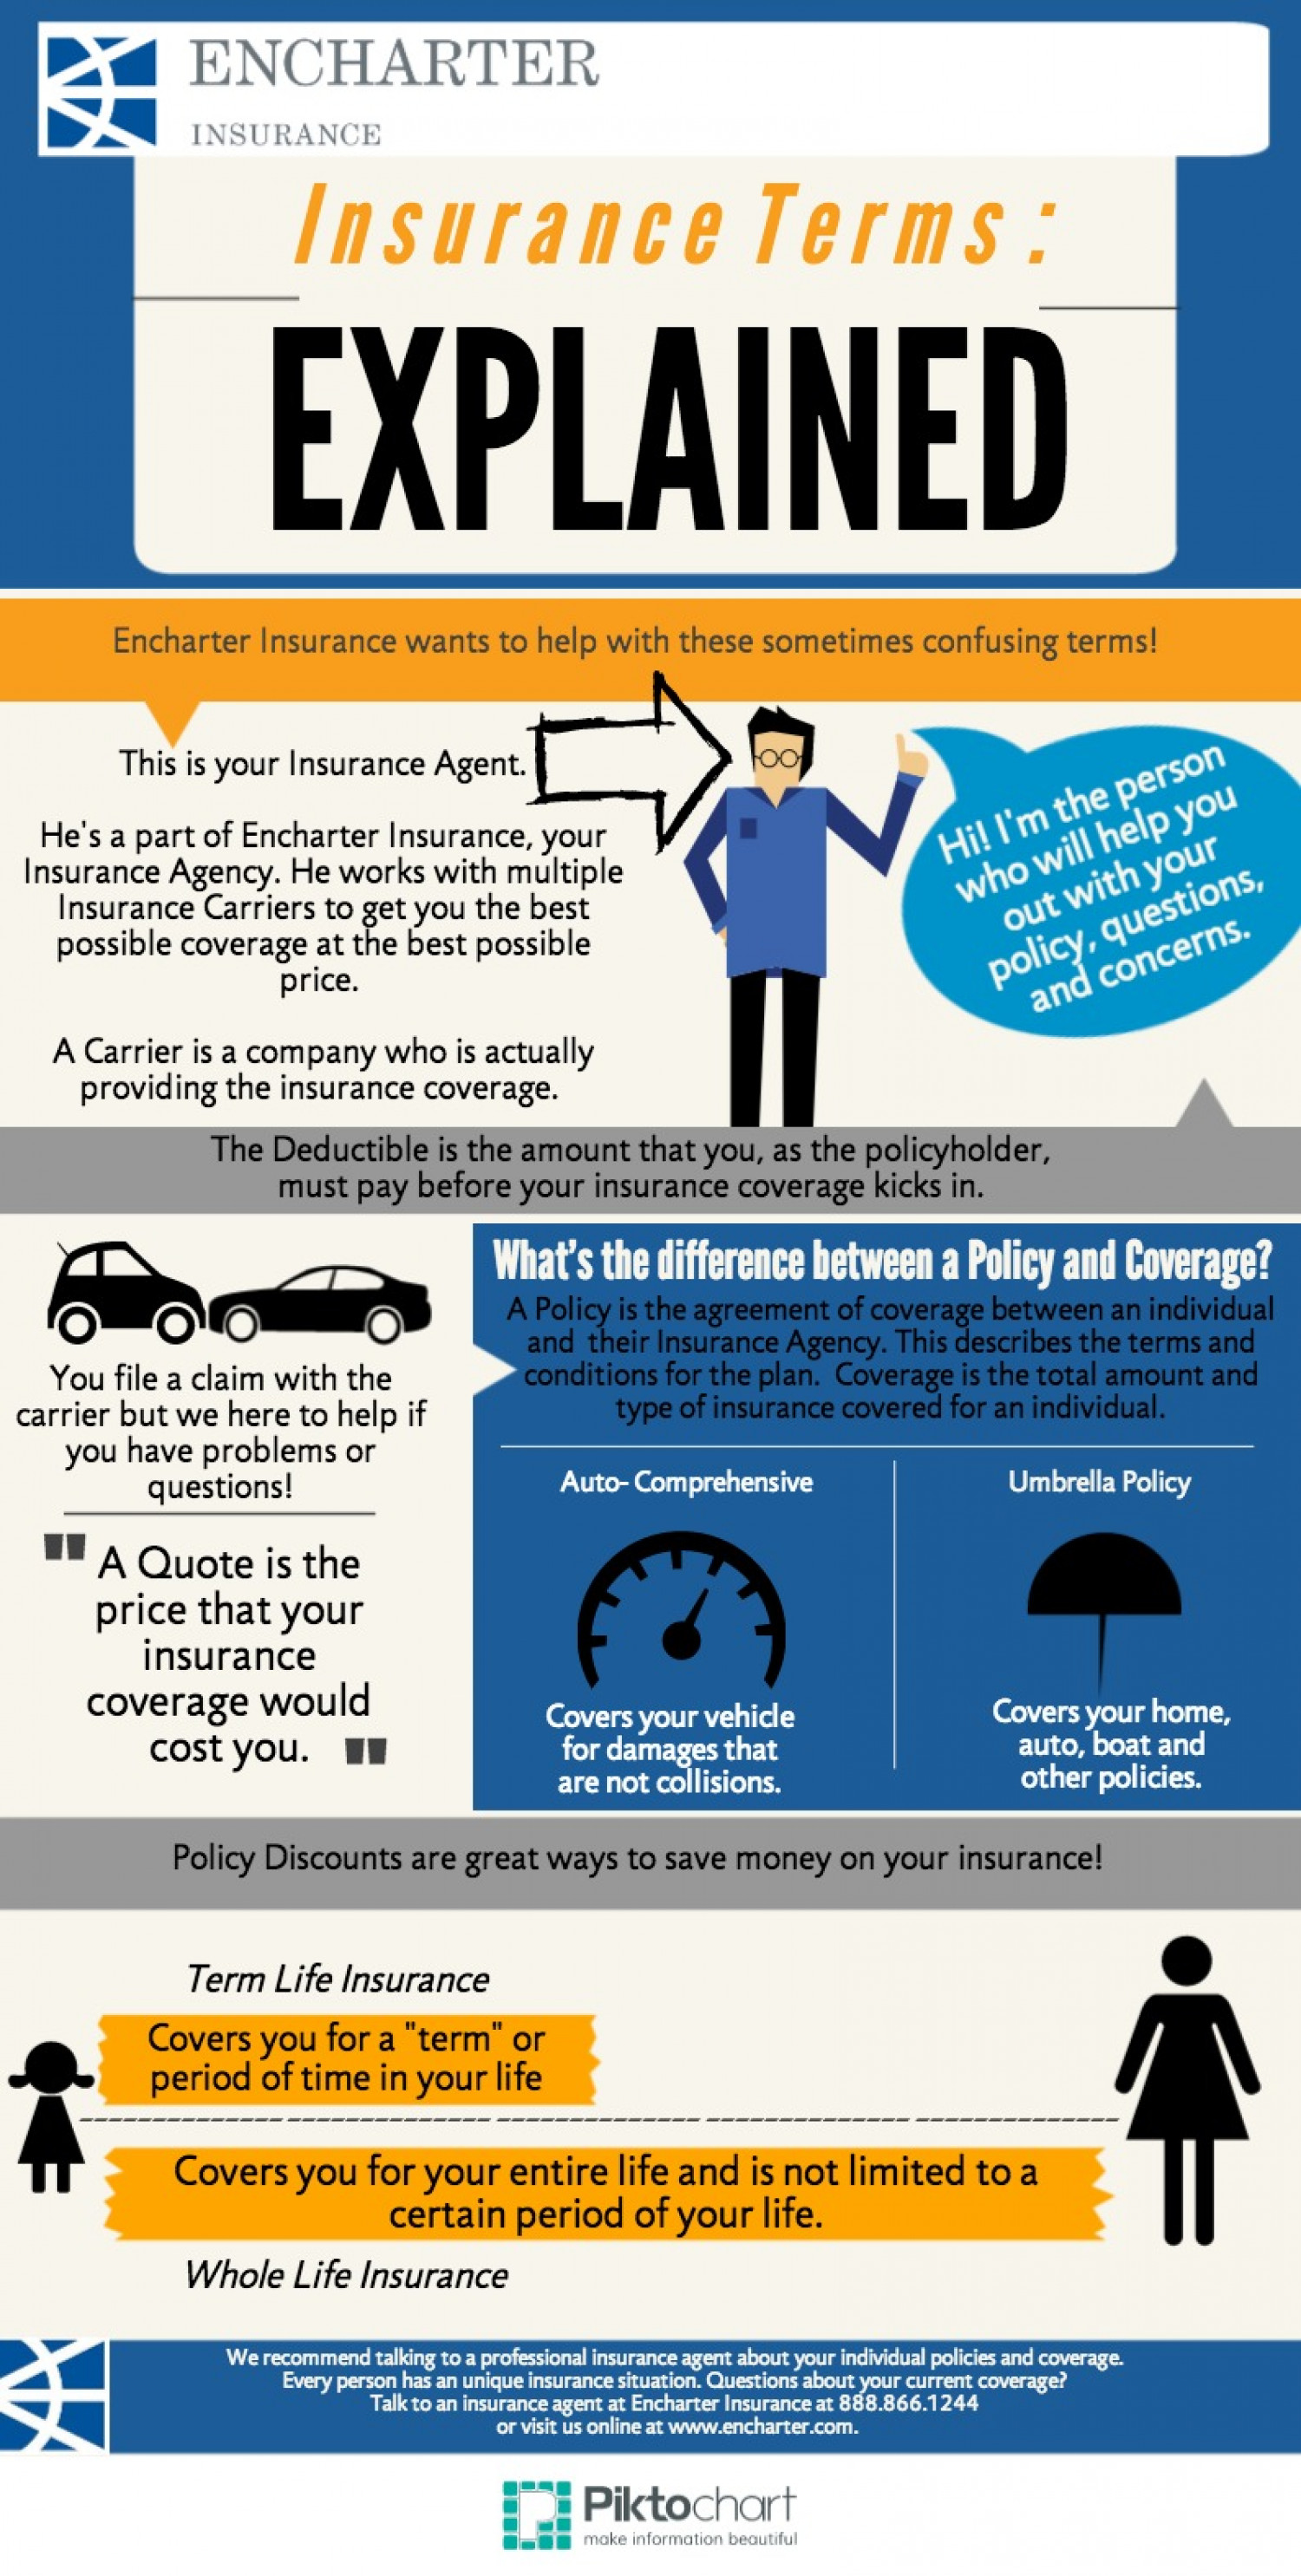 Insurance Terms: Explained Infographic